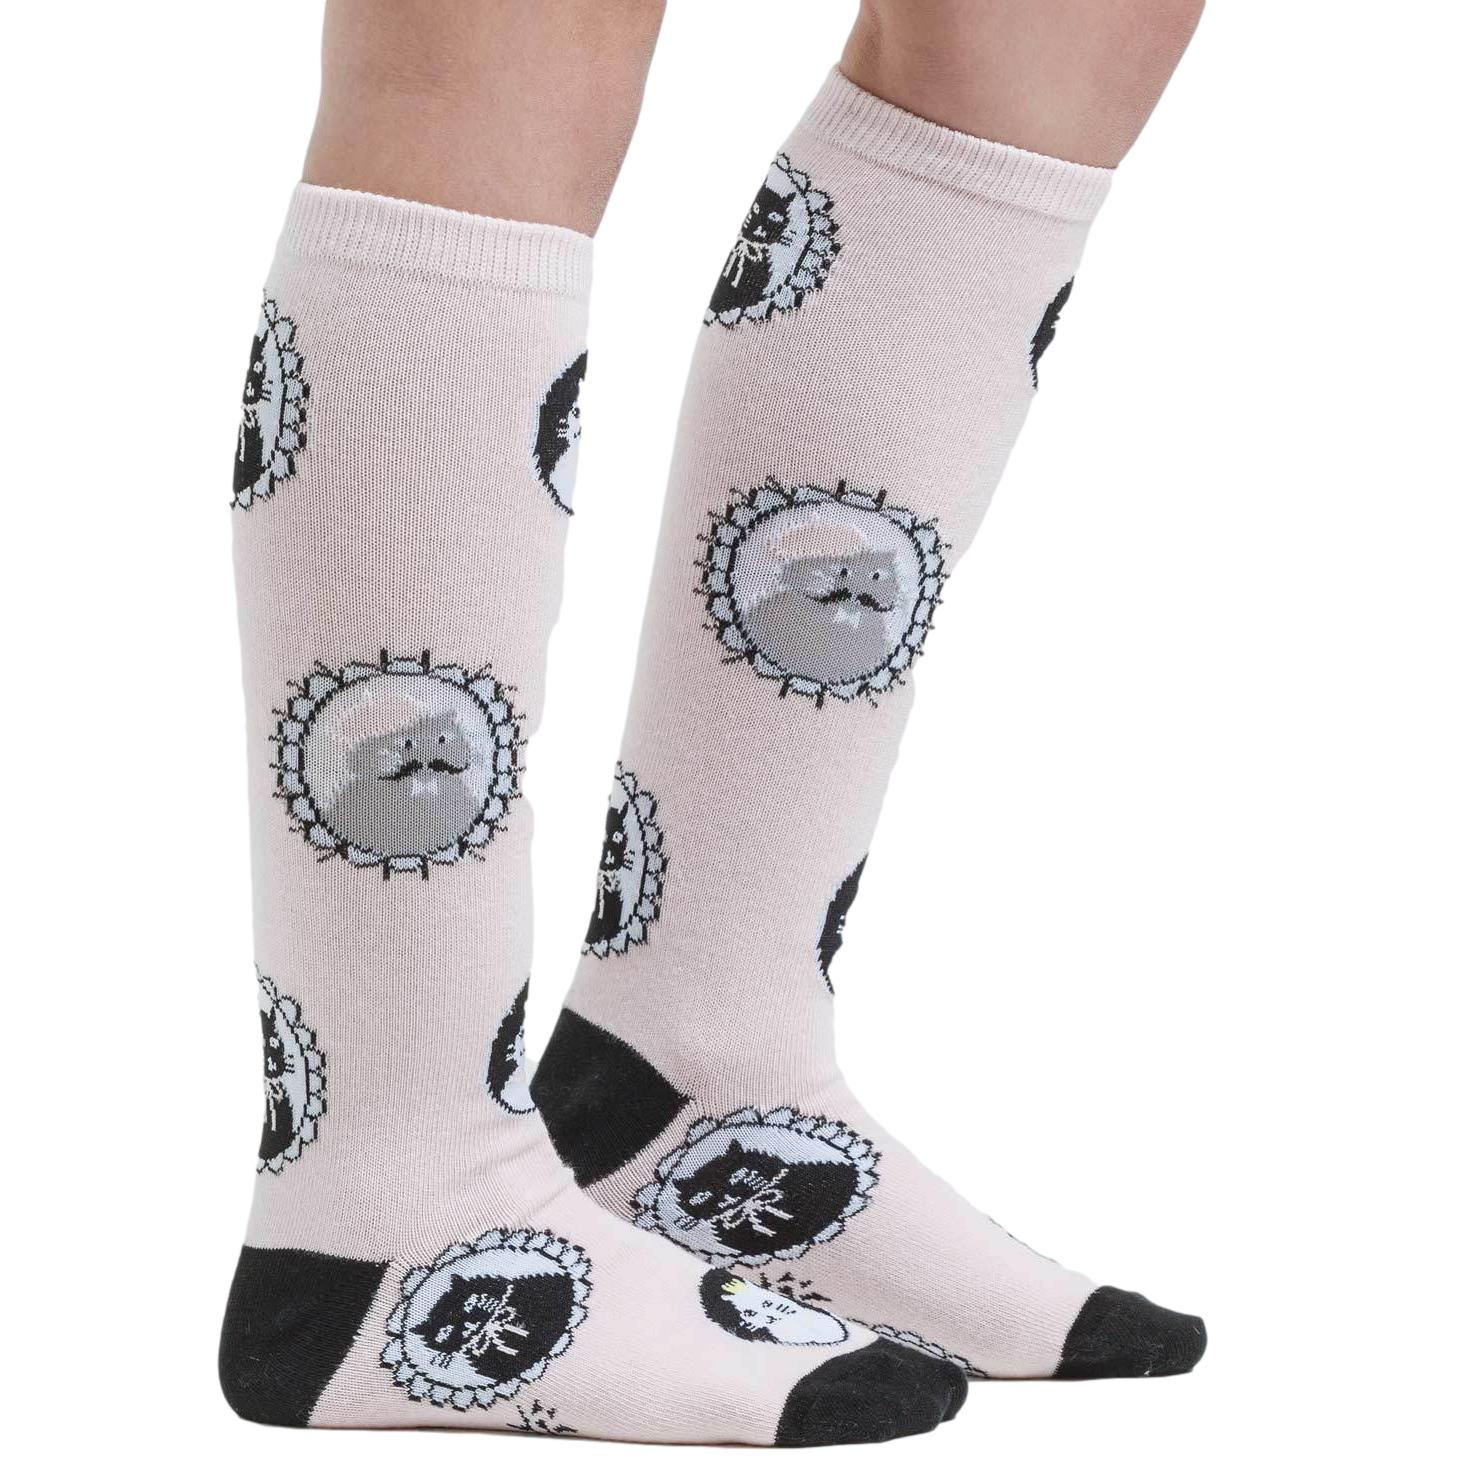 Sock it to Me Cameow Youth (aged 3-6) Knee High Socks